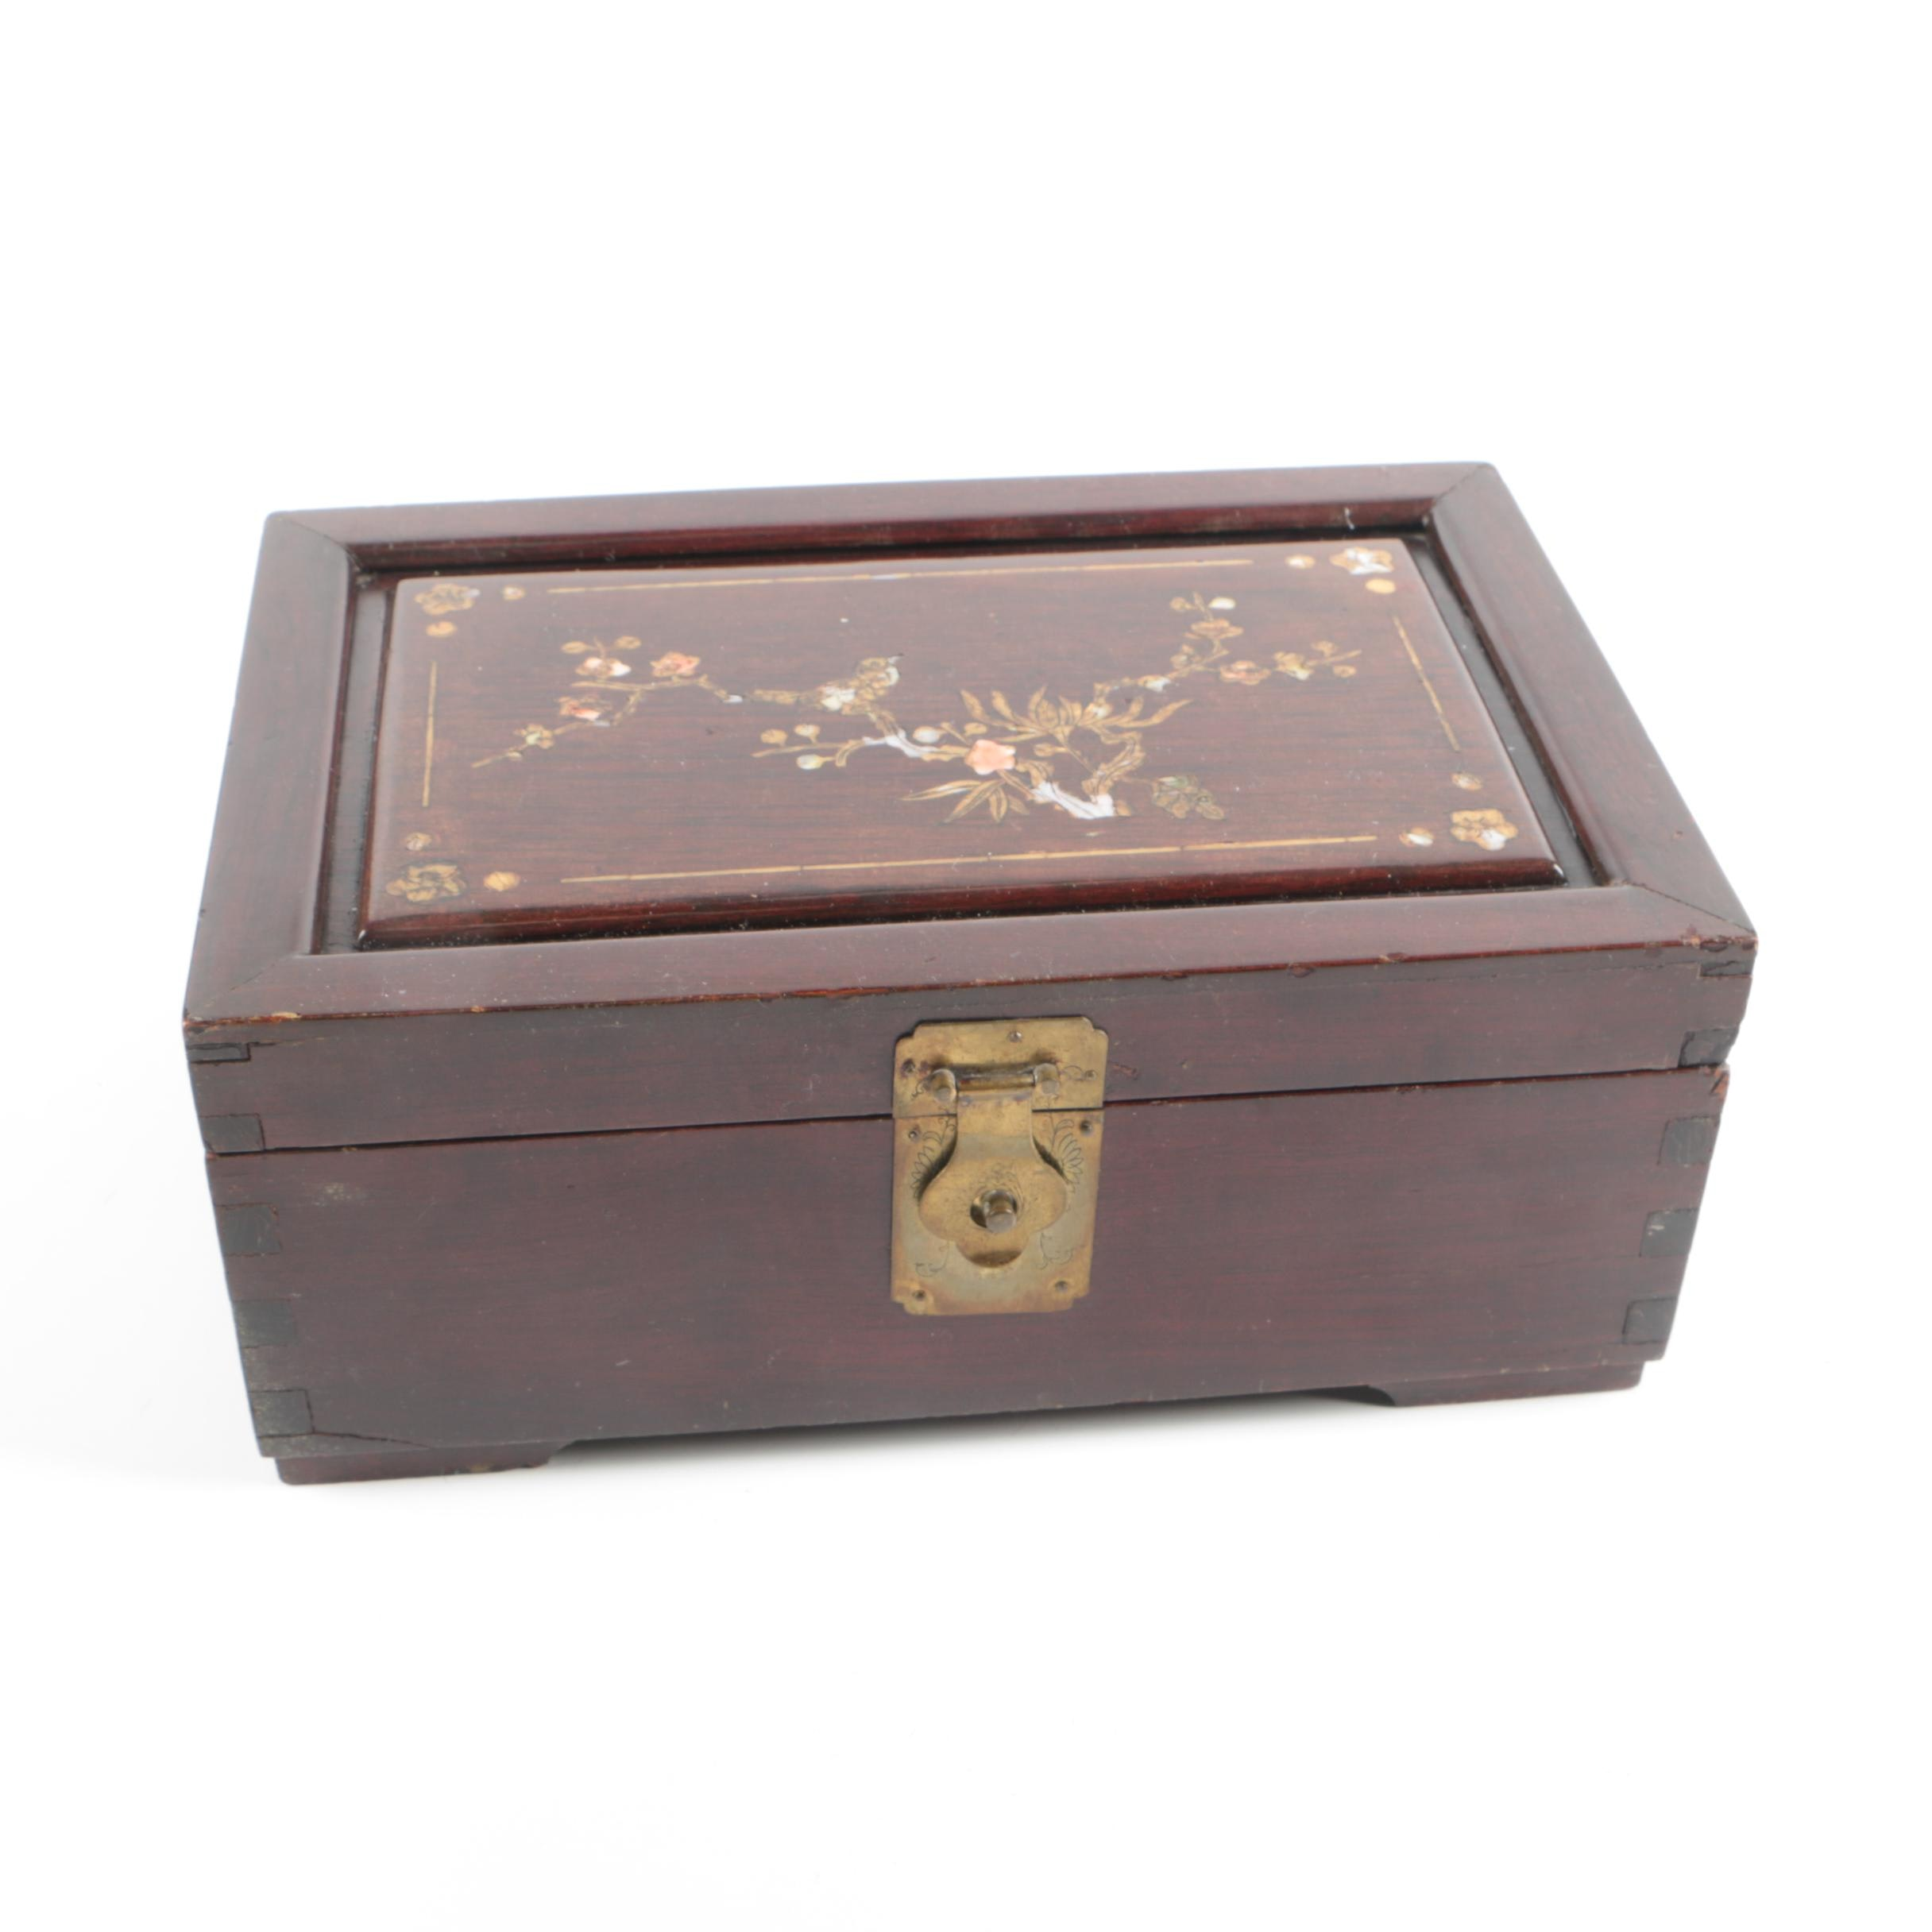 Vintage Chinese Jewelry Box with Mother of Pearl and Coral Inlays